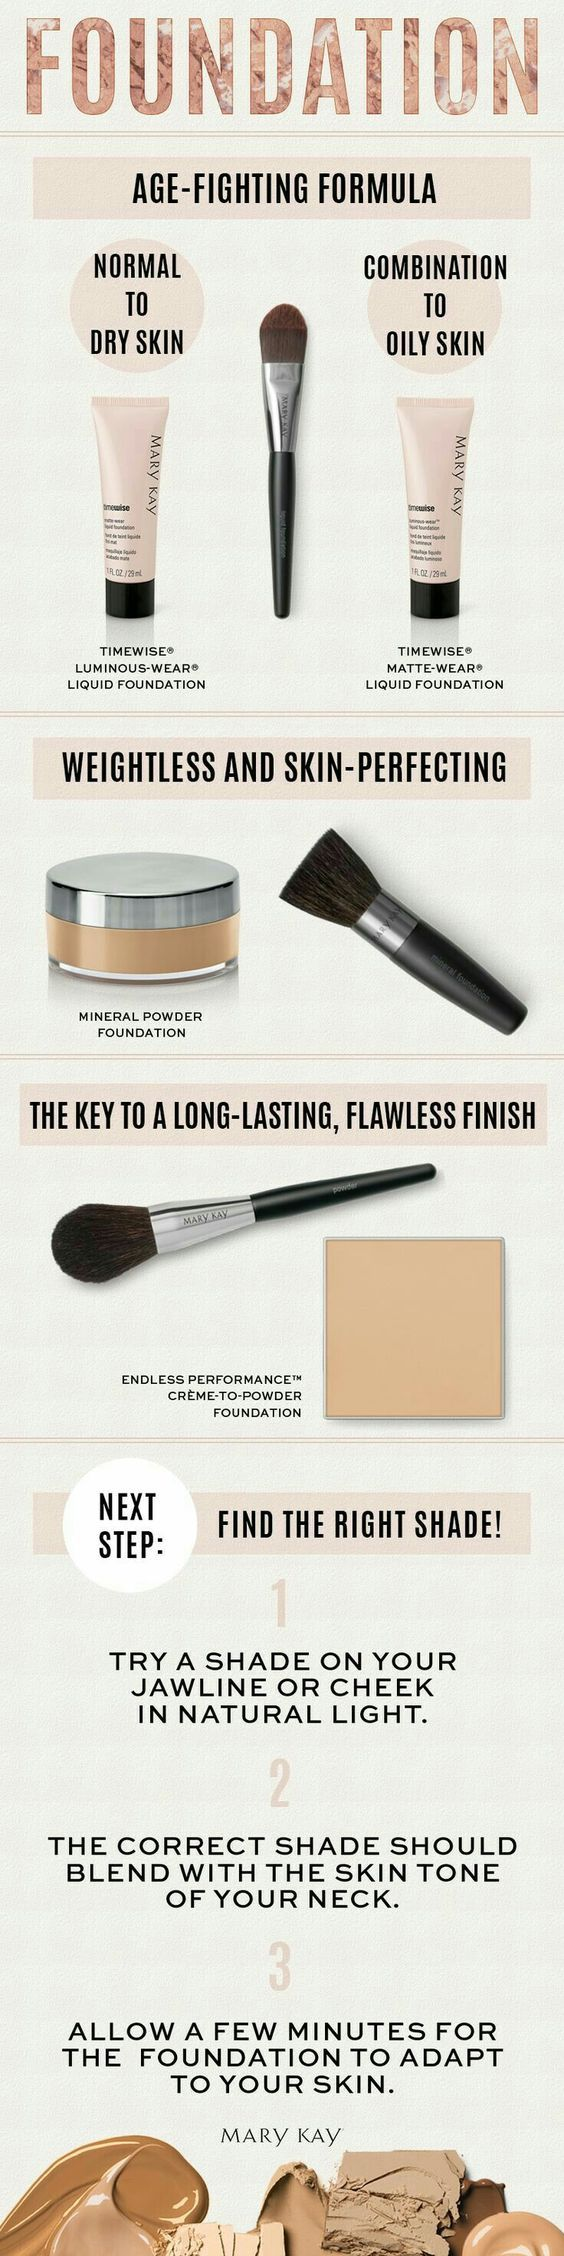 A perfect look starts with a solid base...let's find the perfect foundation for you! Contact me today or shop online now at: marykay.com/island